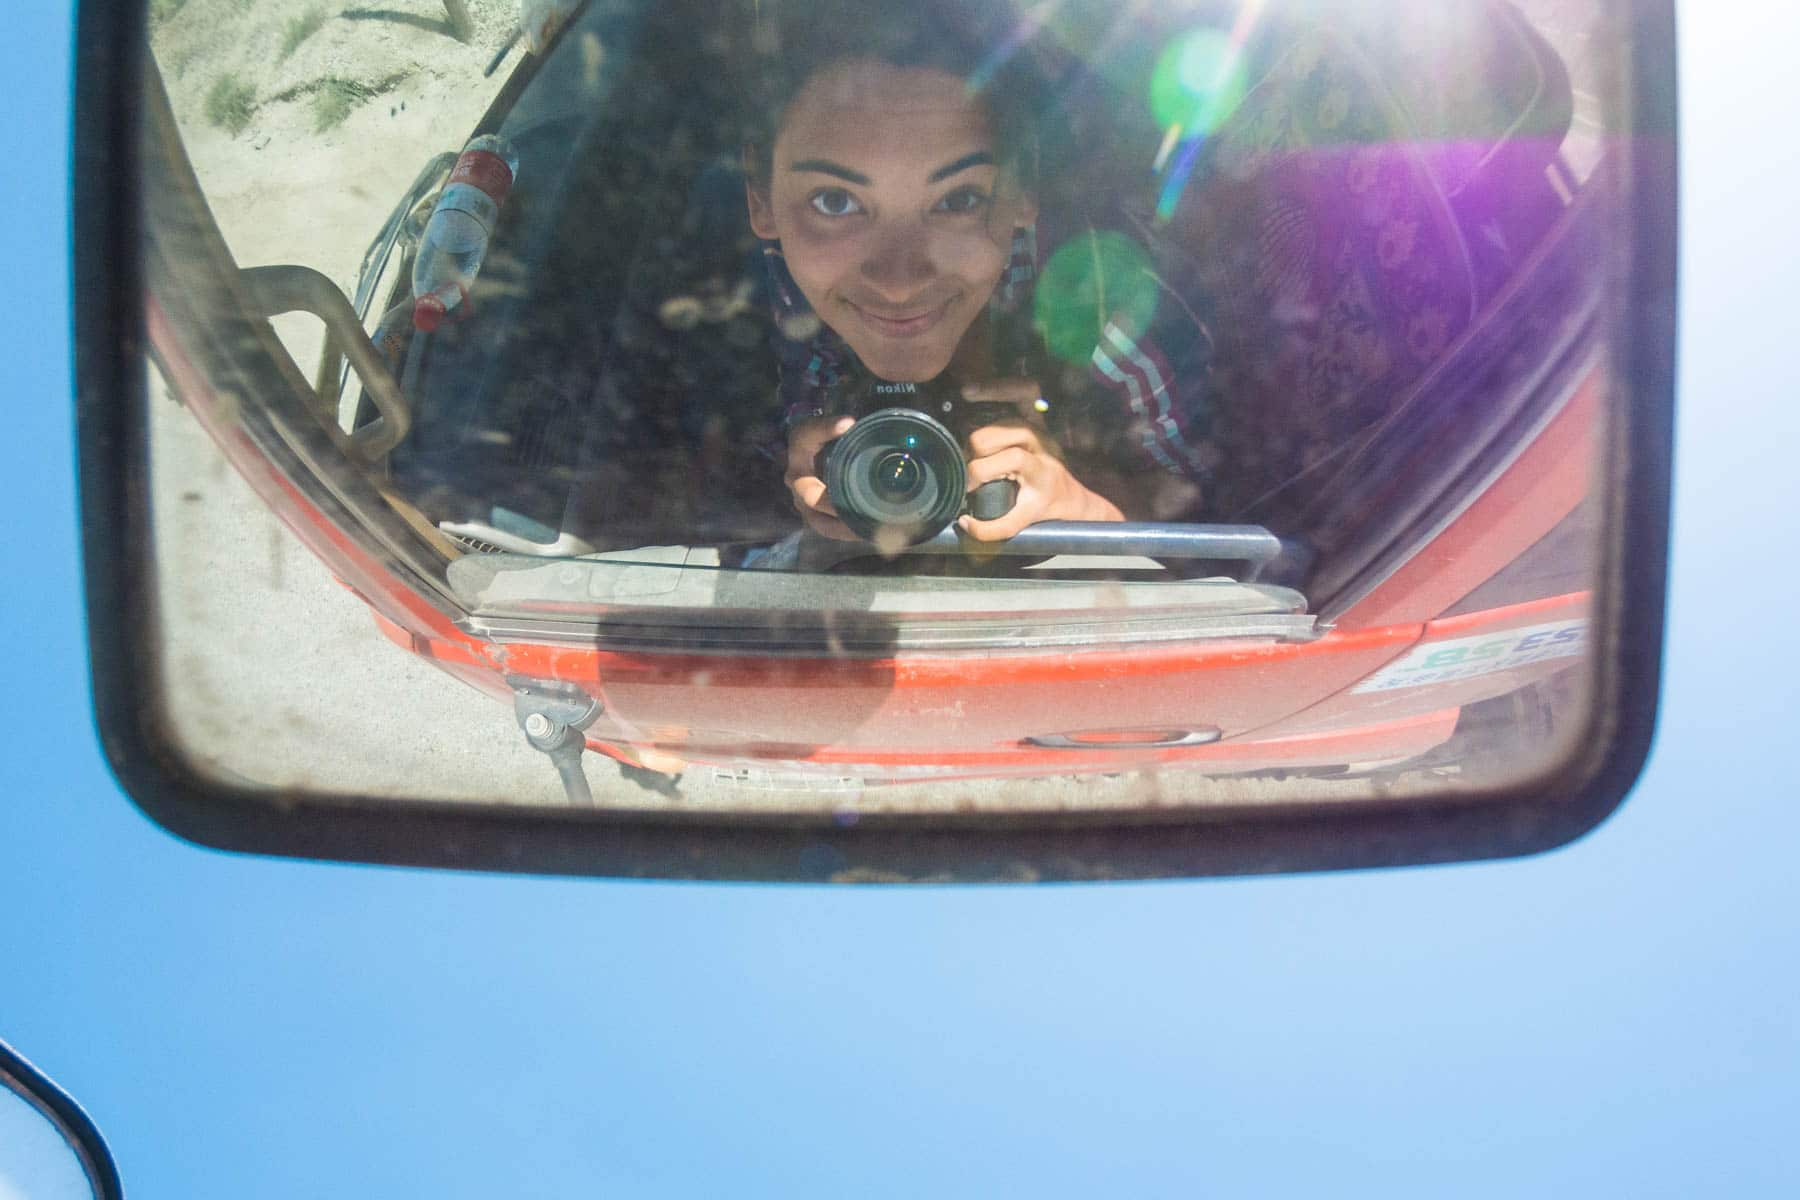 The expert behind the camera advice for beginner travel photographers